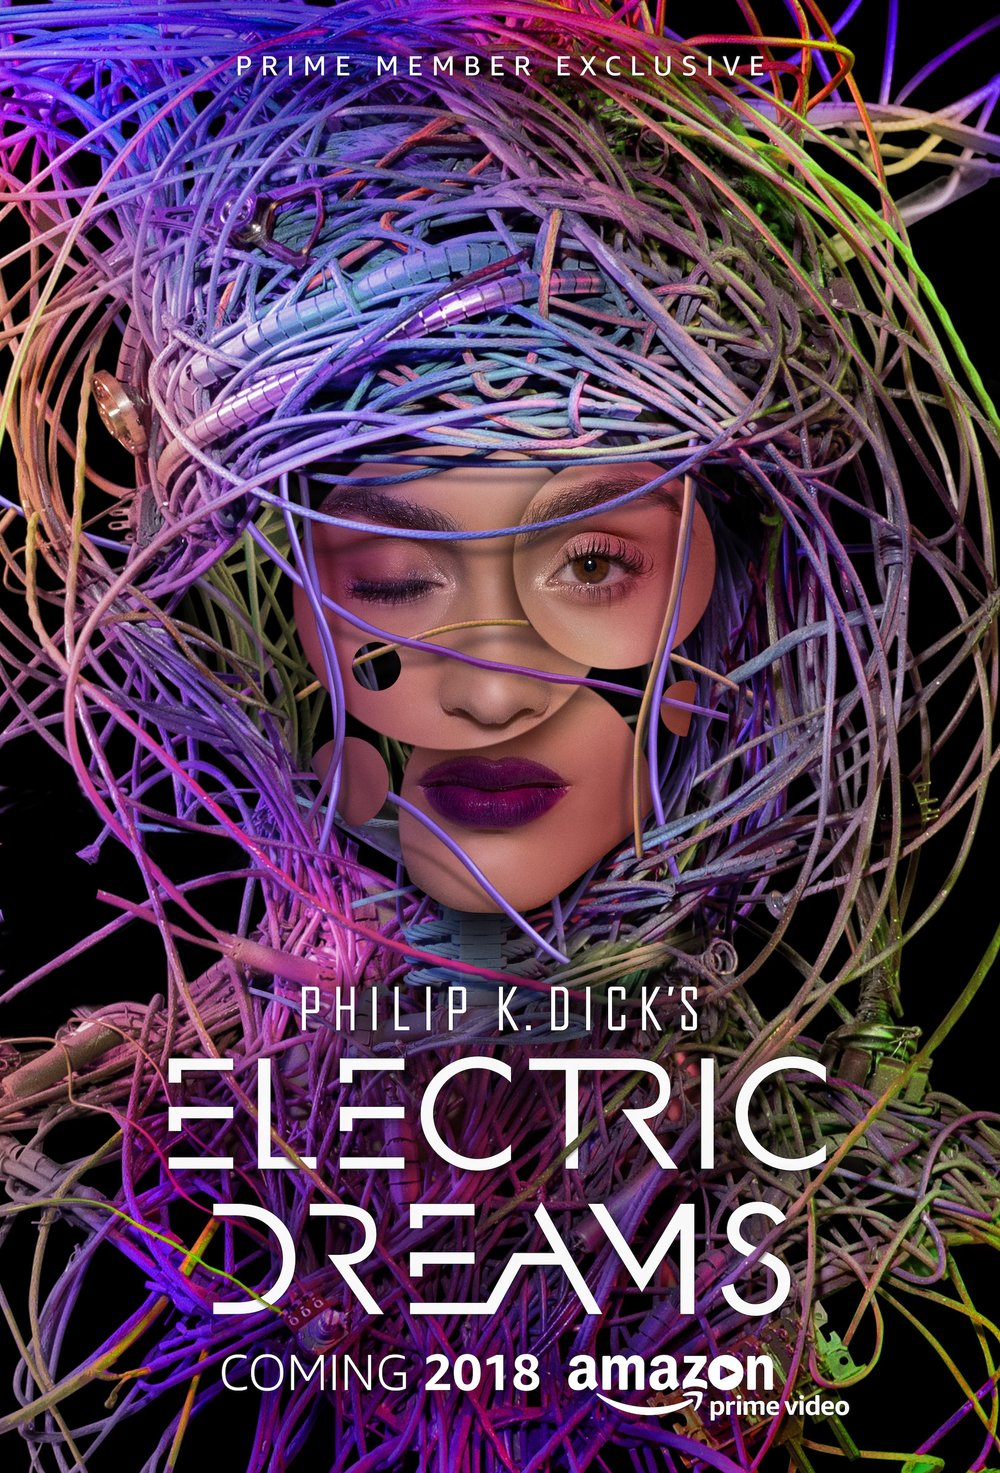 philip-k-dick-electric-dreams-poster.jpg